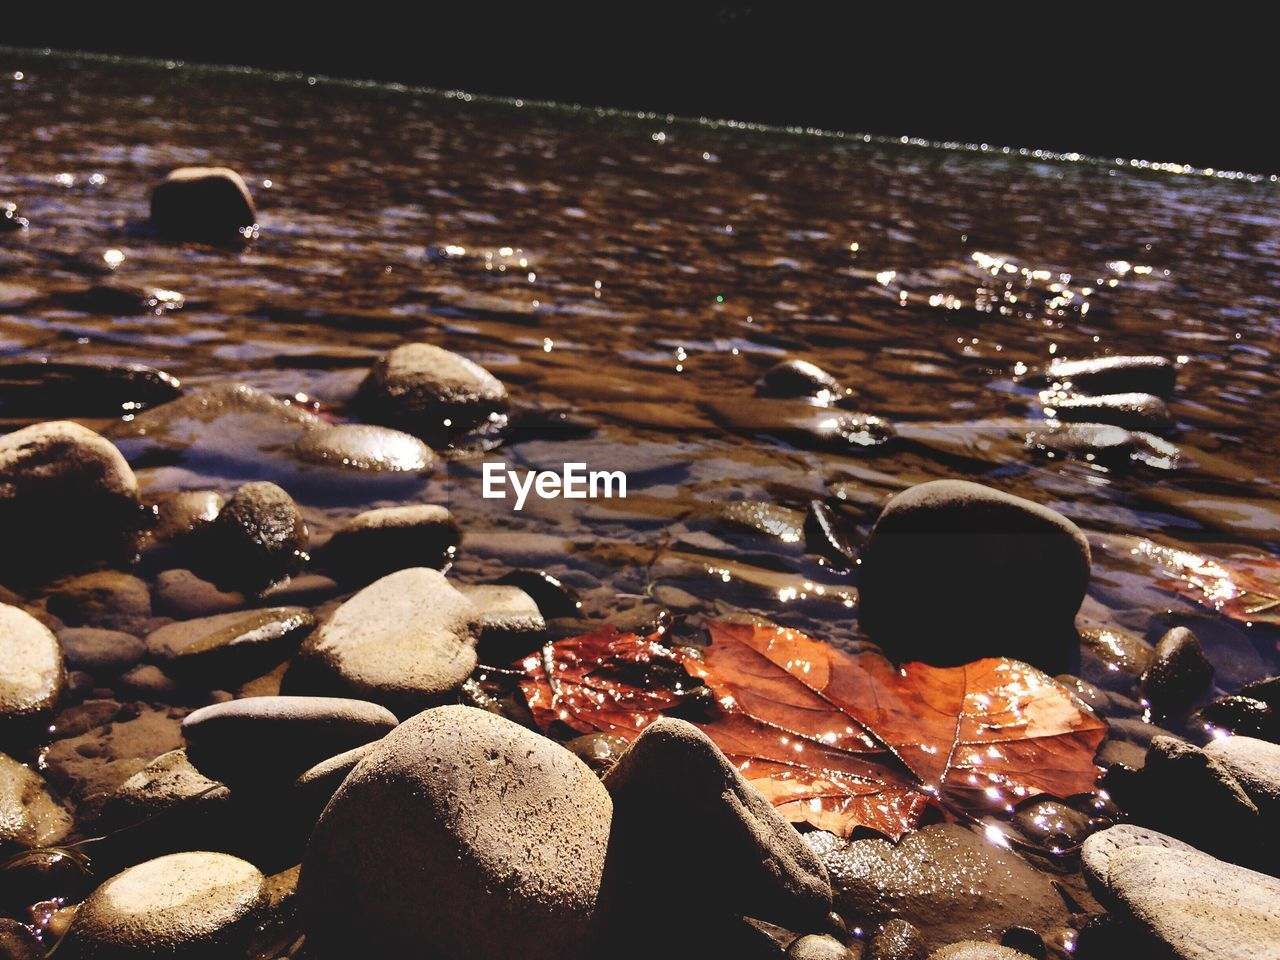 beach, water, shore, pebble, sea, nature, outdoors, pebble beach, sand, beauty in nature, no people, day, close-up